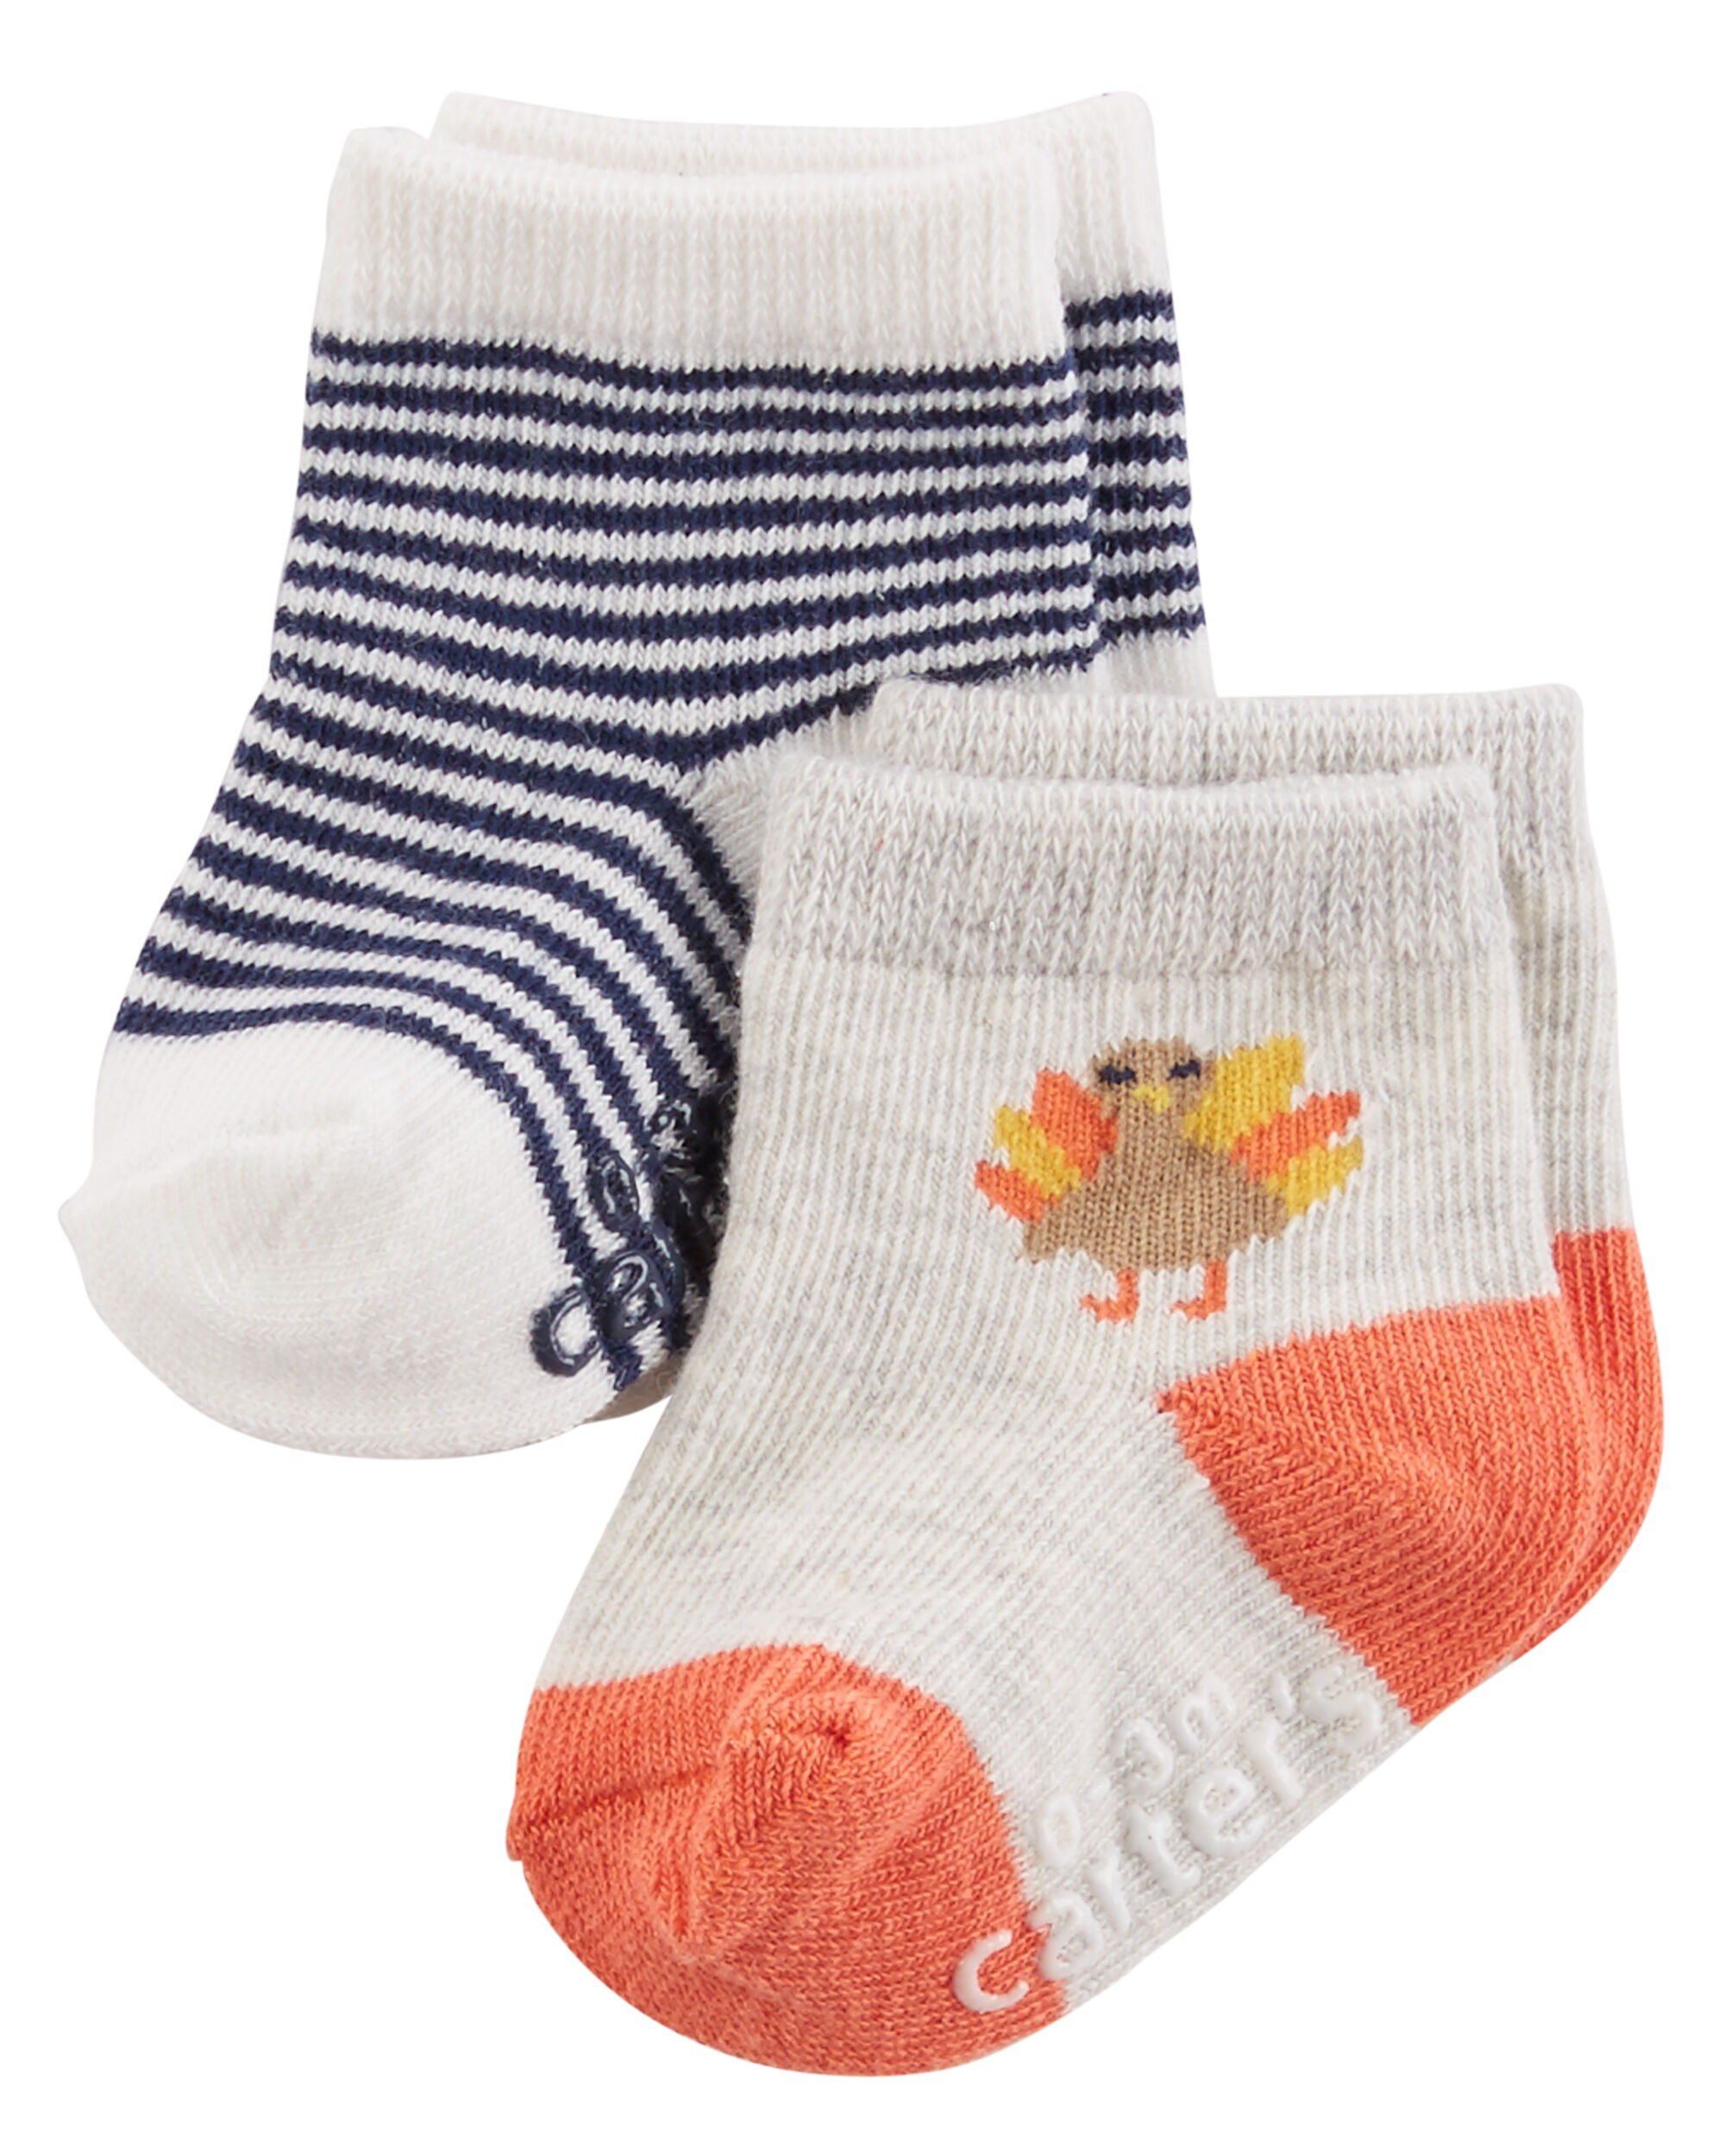 2 Pack Turkey Booties